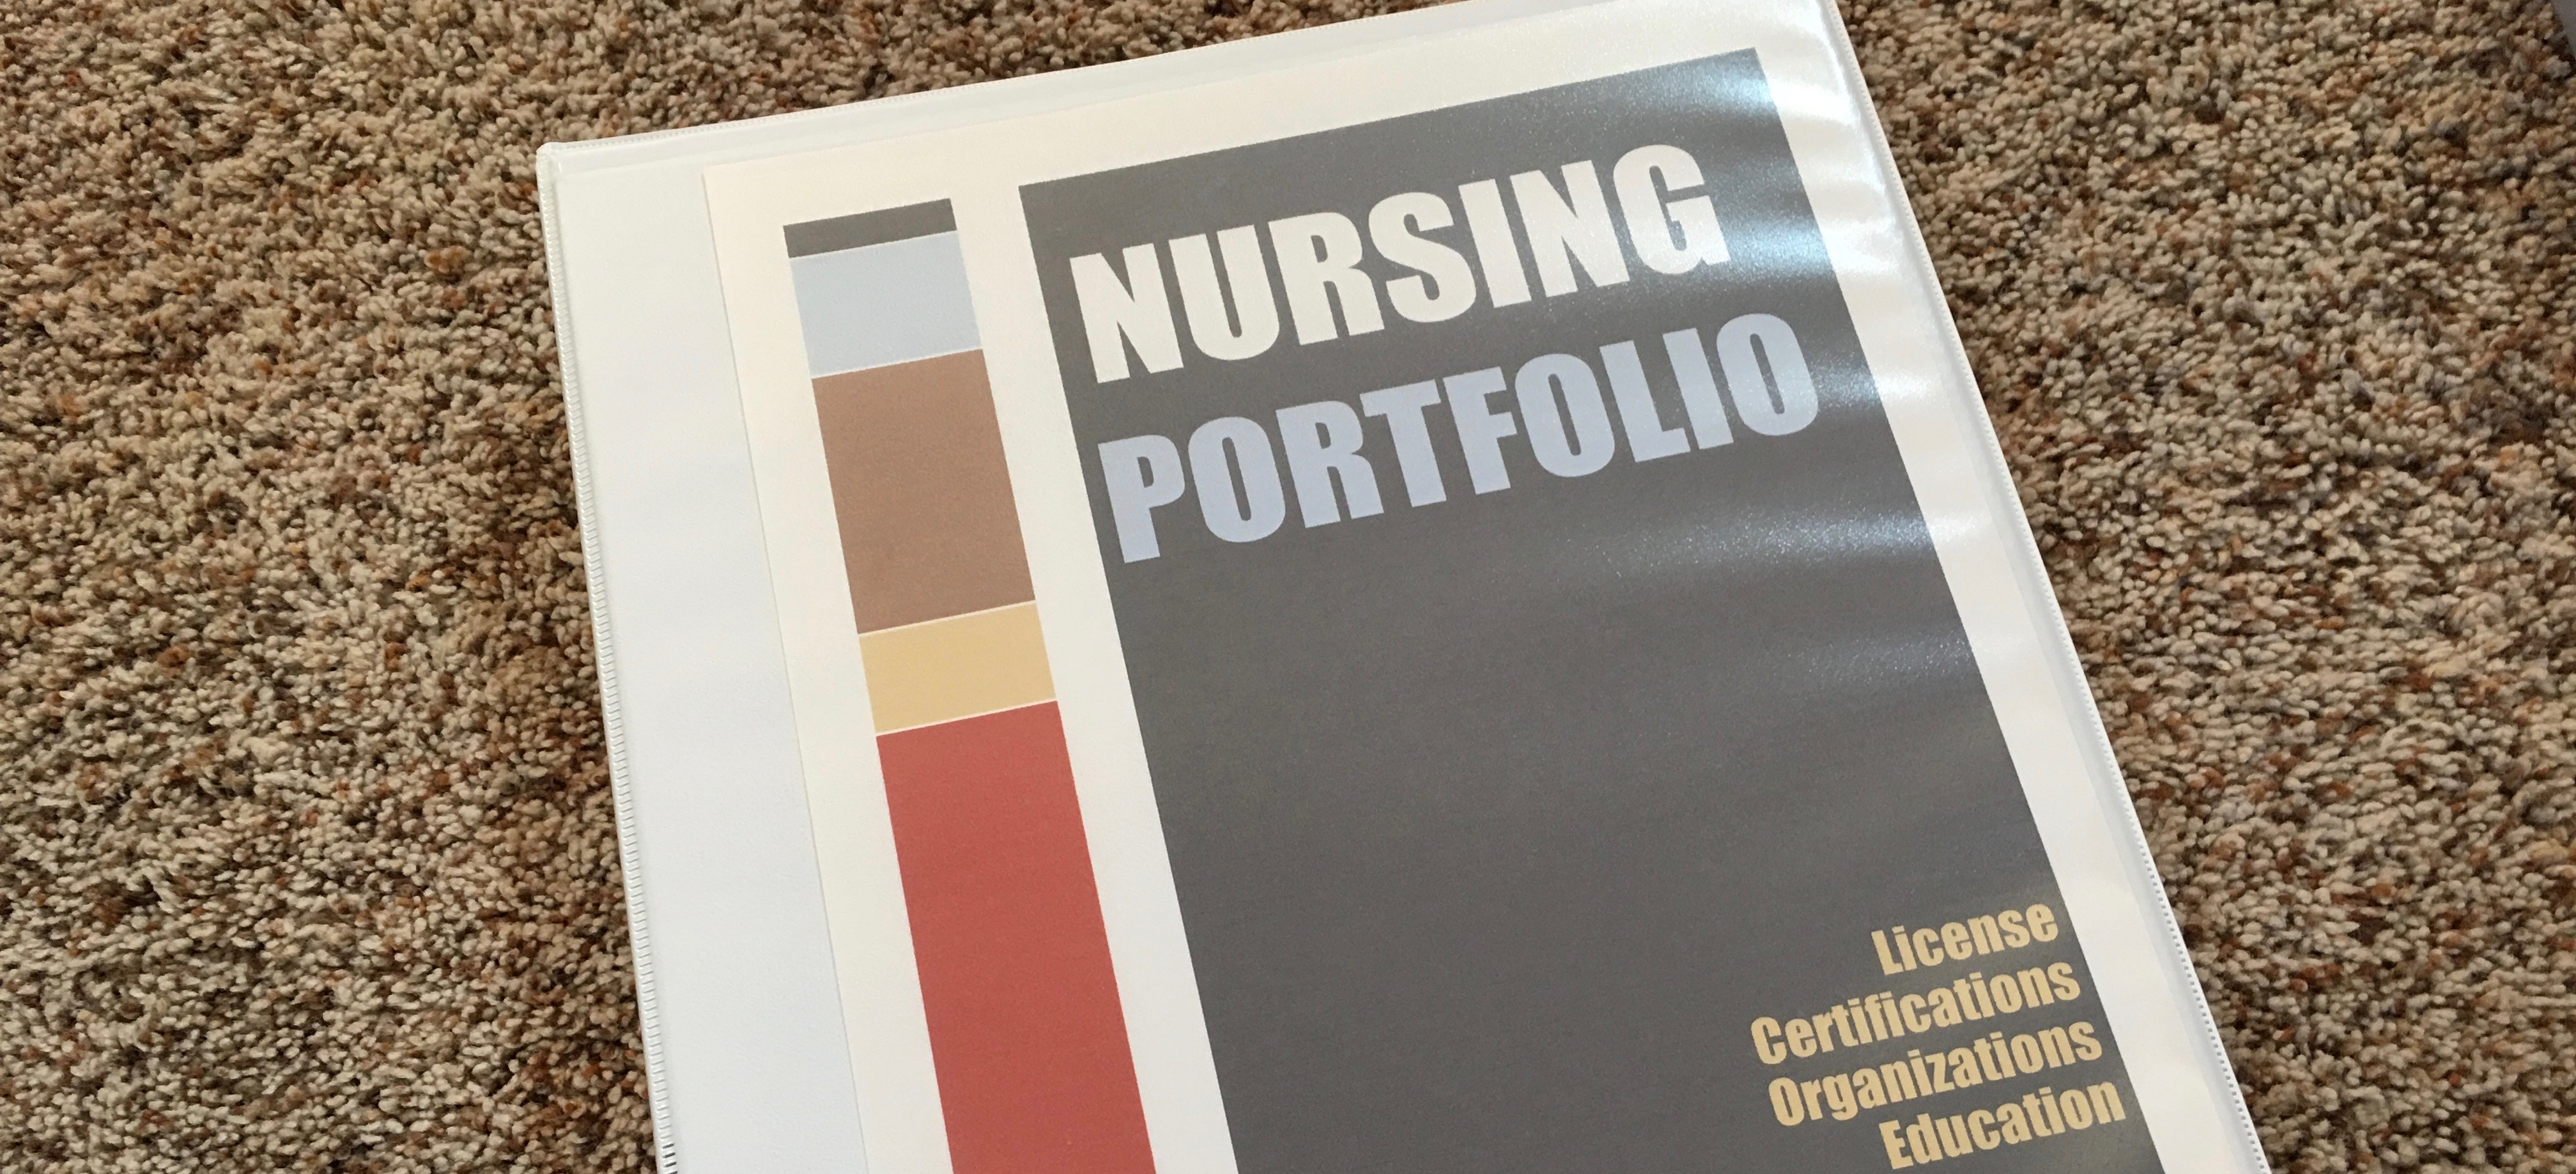 Nursing portfolio keep nursing ceceu memberships licensure nursing portfolio keep nursing ceceu memberships licensure organized irish monarchy 1betcityfo Images